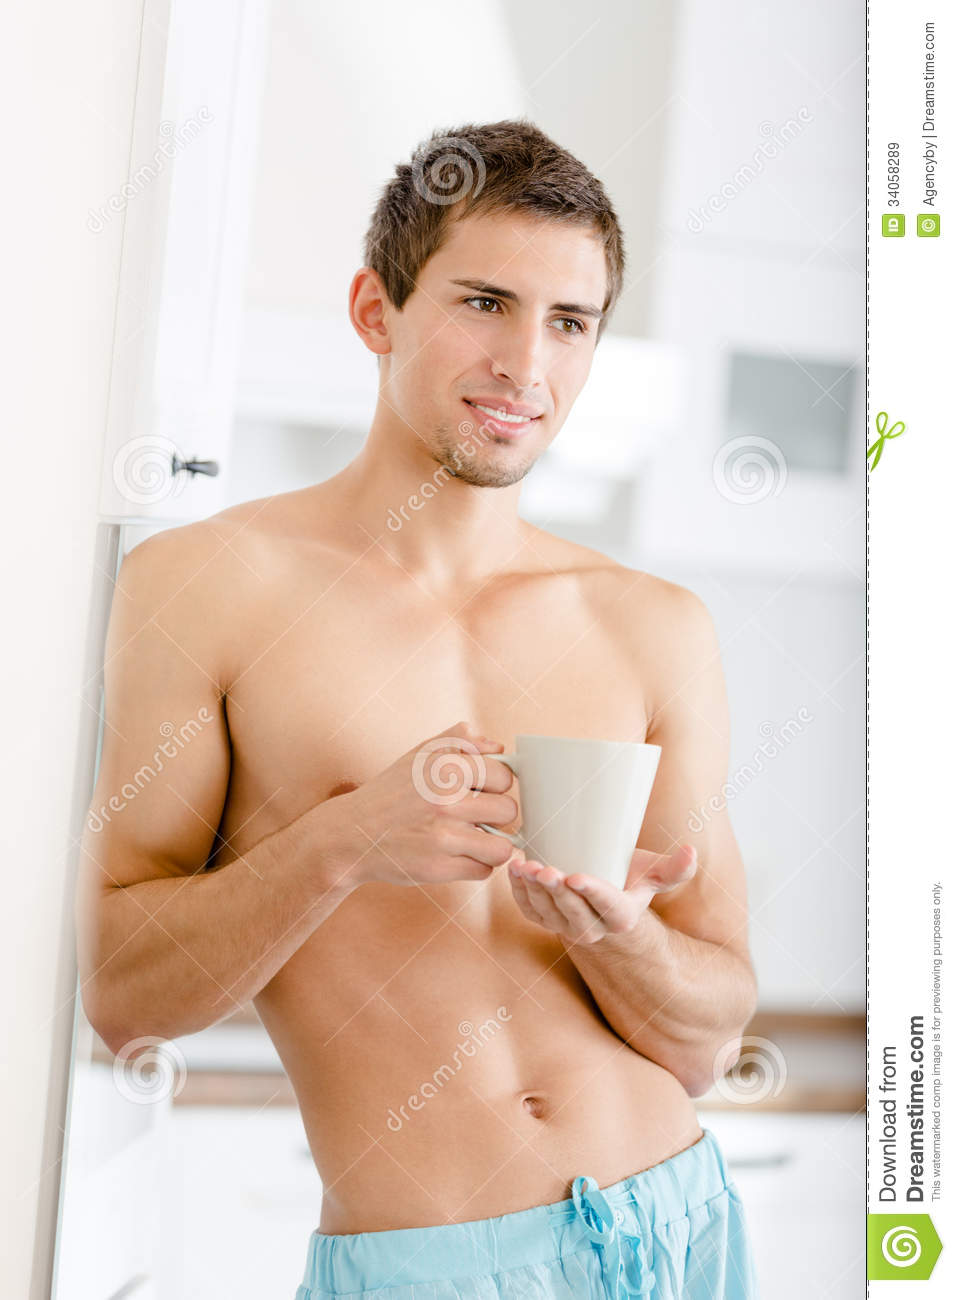 Naked coffee man